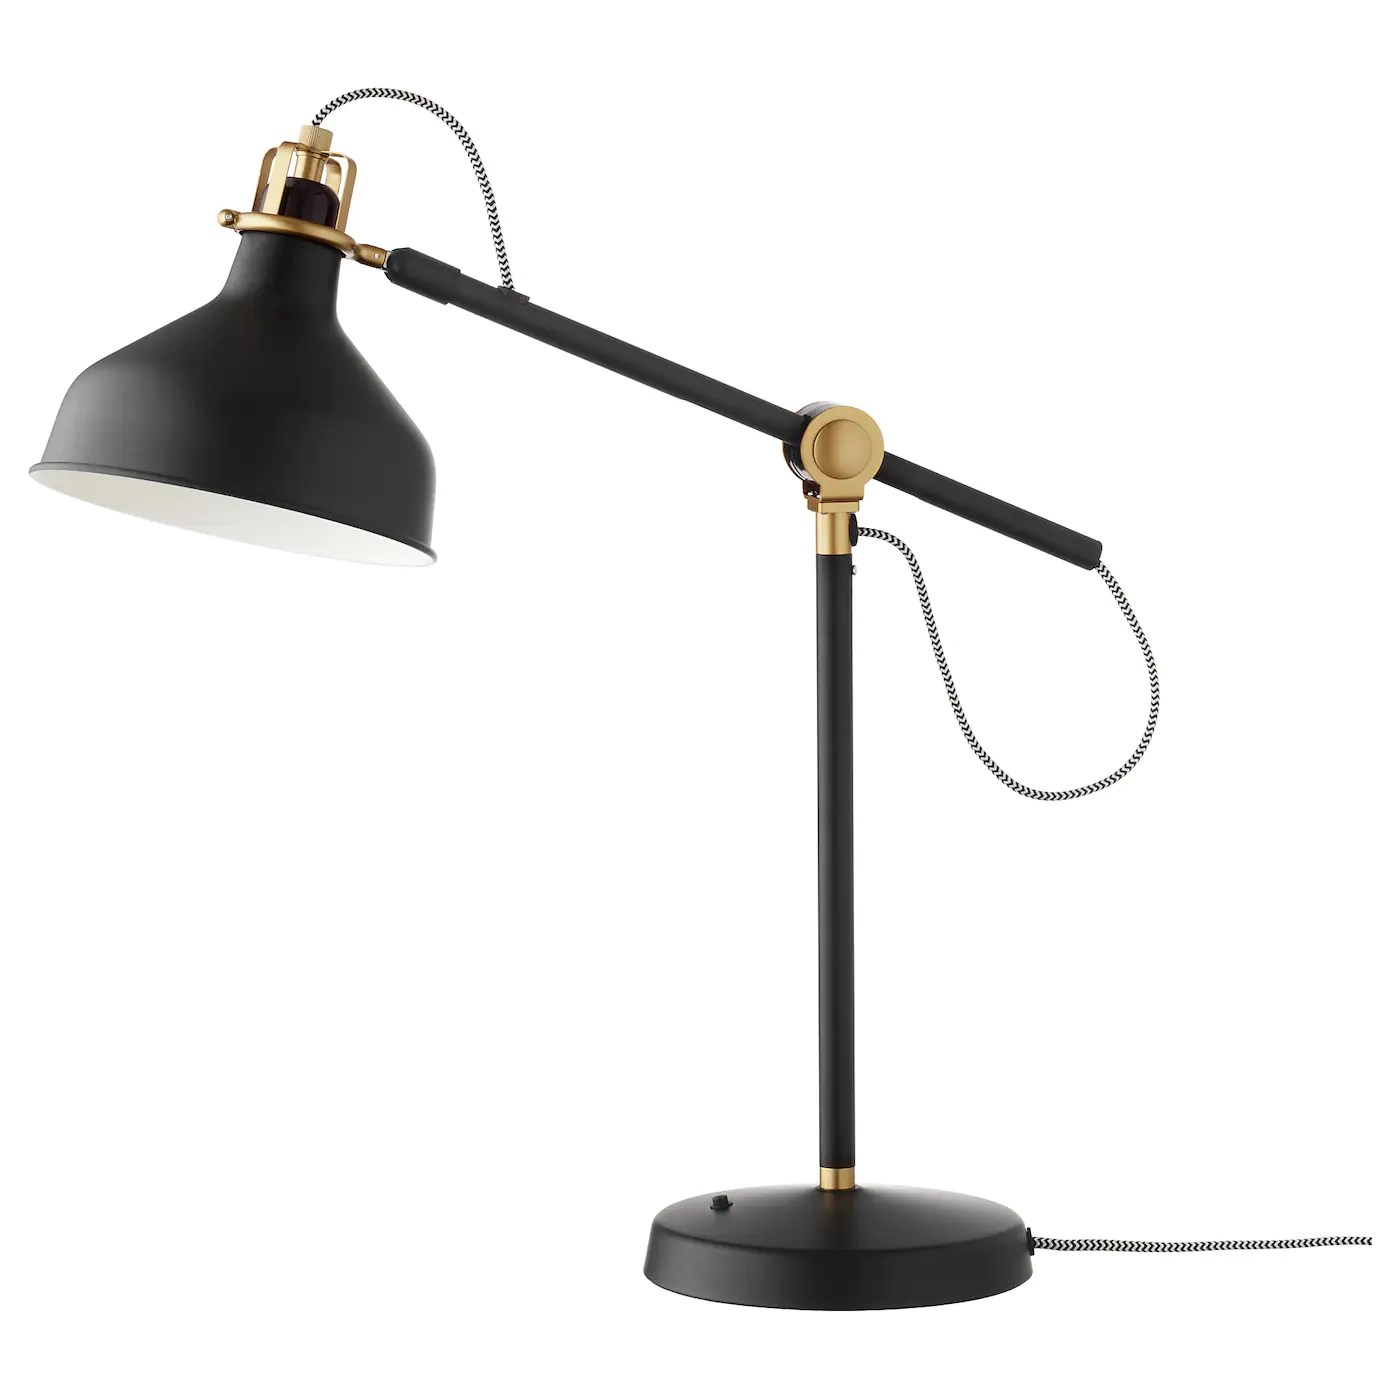 Ikea Reading Lamp Retail Shop Lighting Ikea Business Dublin